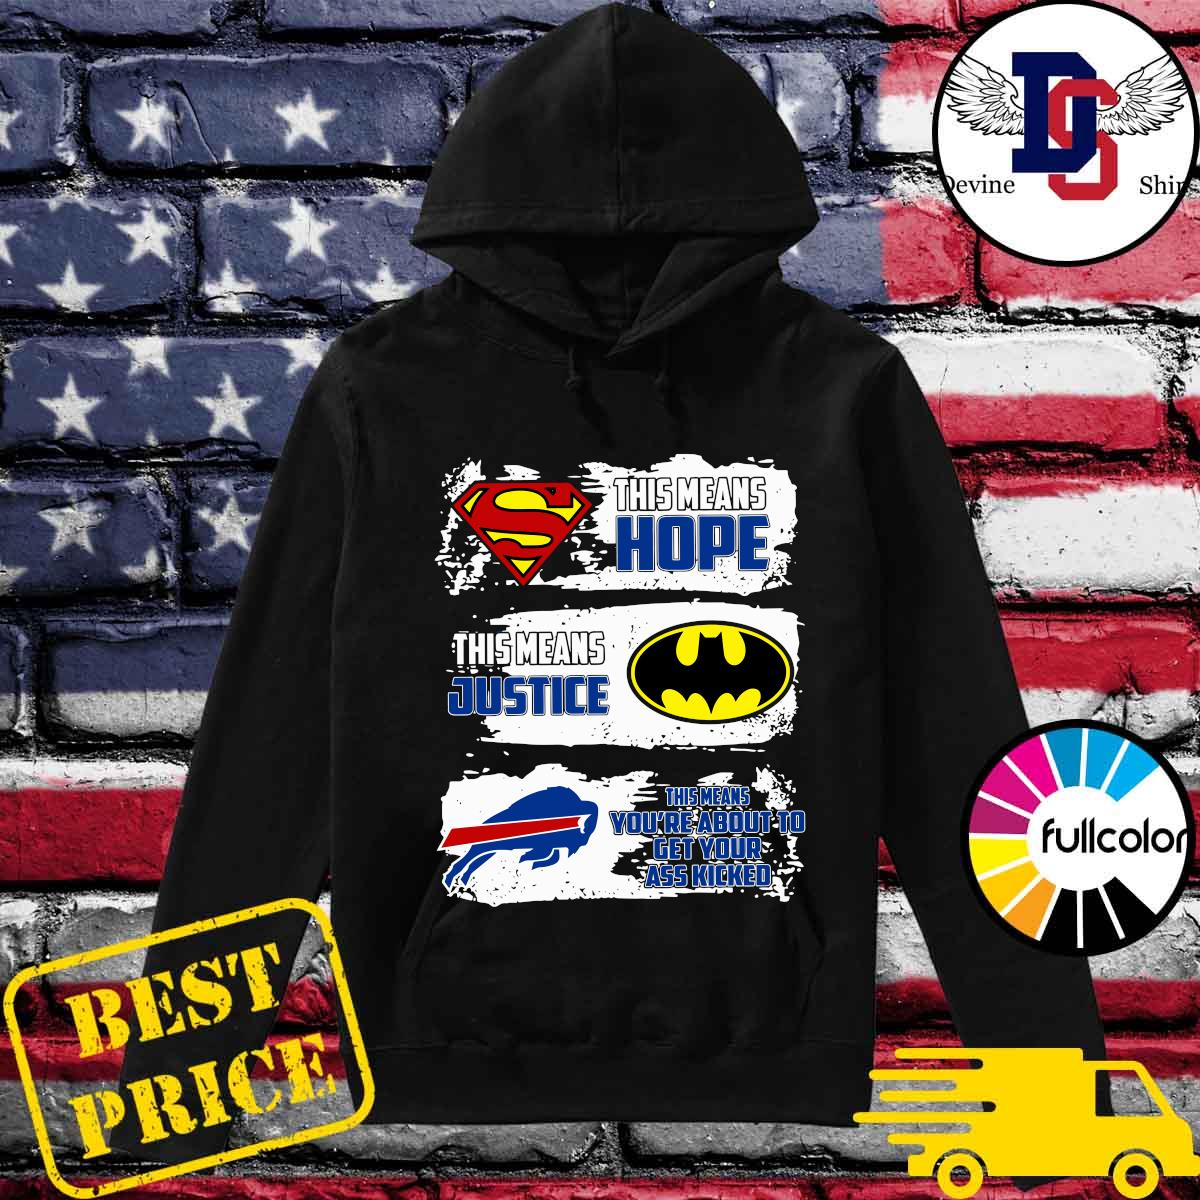 Superman This Means Hope, Batman This Means Justice, Buffalo Bills This Means You_re About To Get Your Ass Kicked Shirt Hoodie